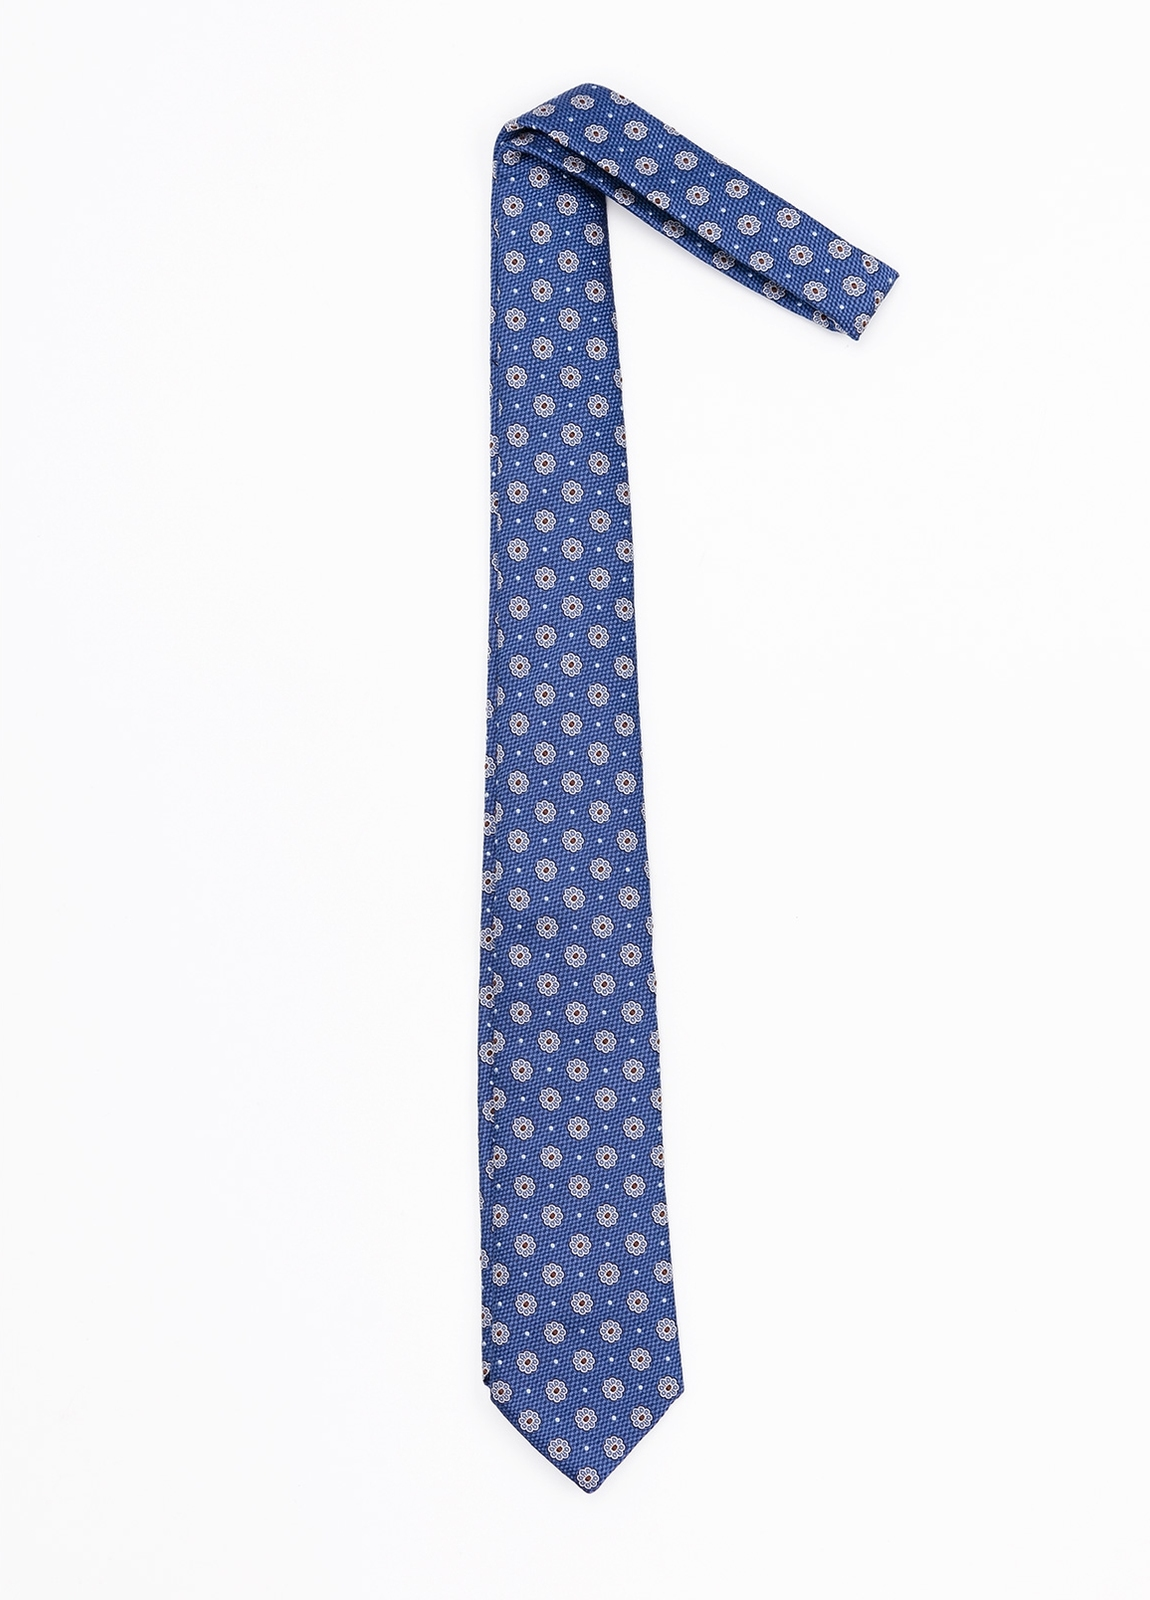 Corbata Formal Wear estampado flores, color azul. Pala 7,5 cm. 100% Seda. - Ítem1